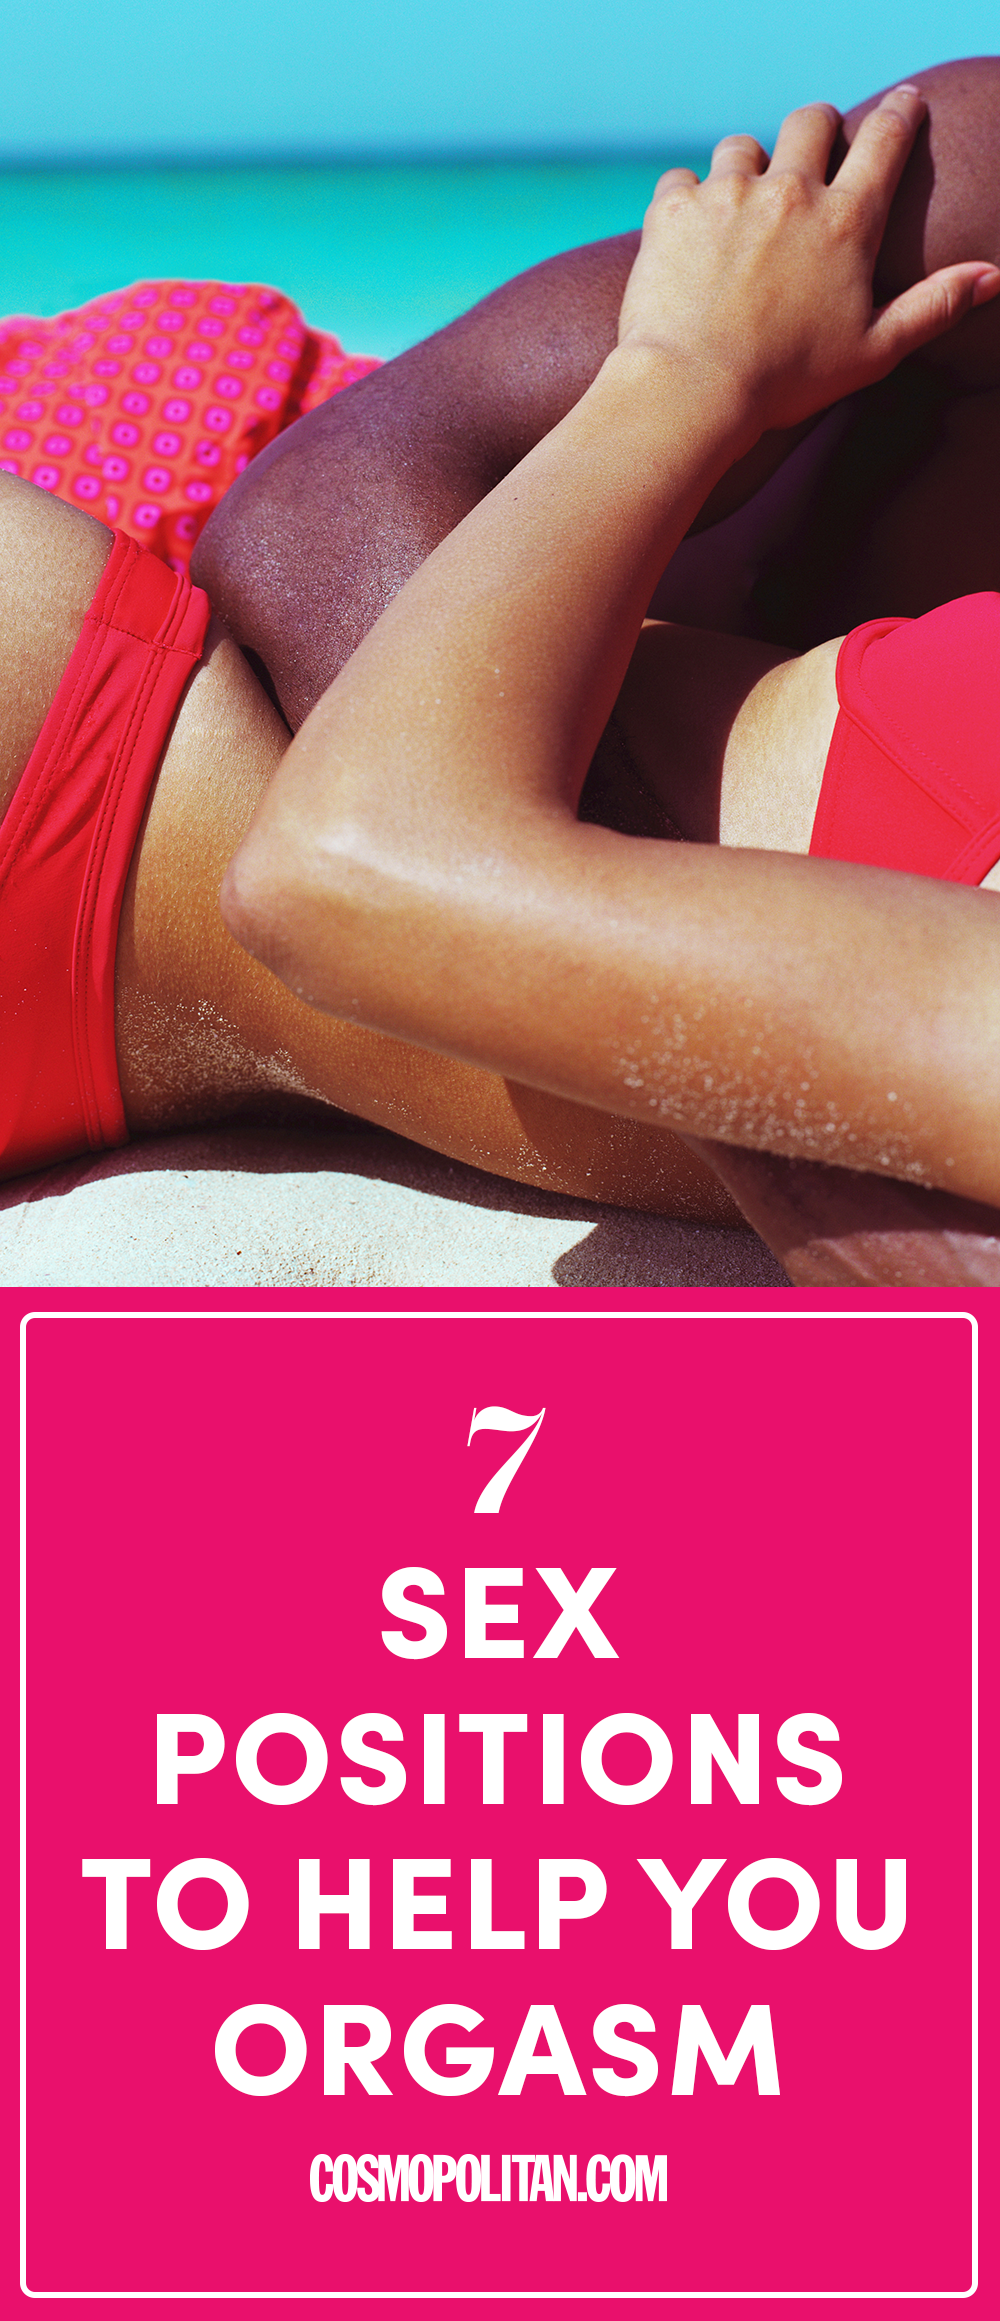 Cuddly wrap positions for sexual health